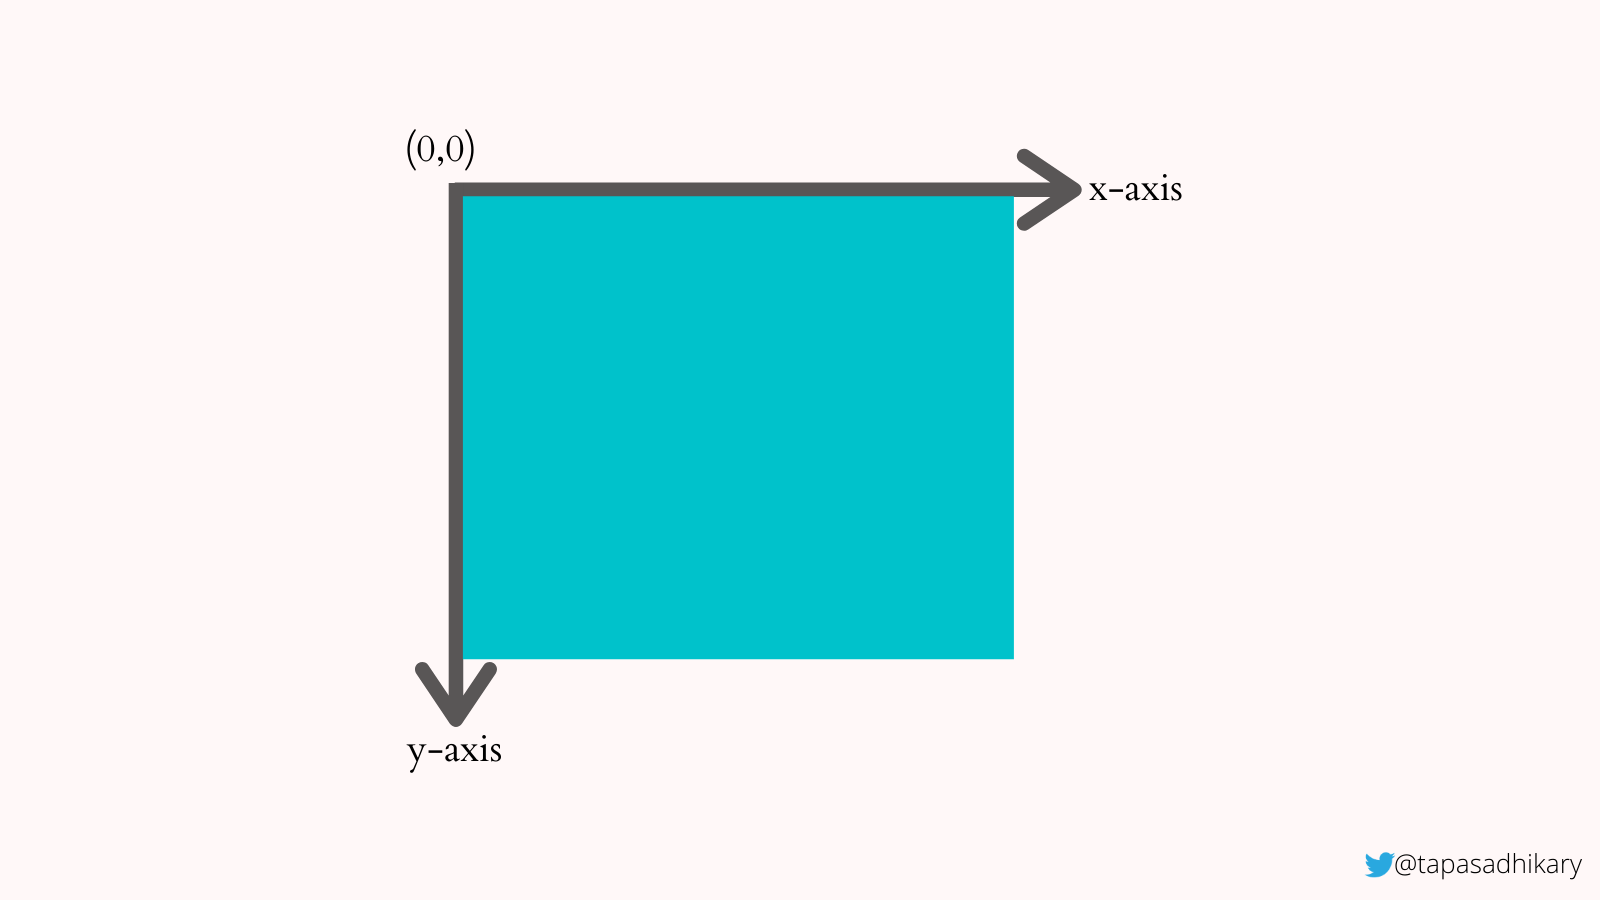 A blue square with its starting point located at a zero zero position on a chart with x and y axes.